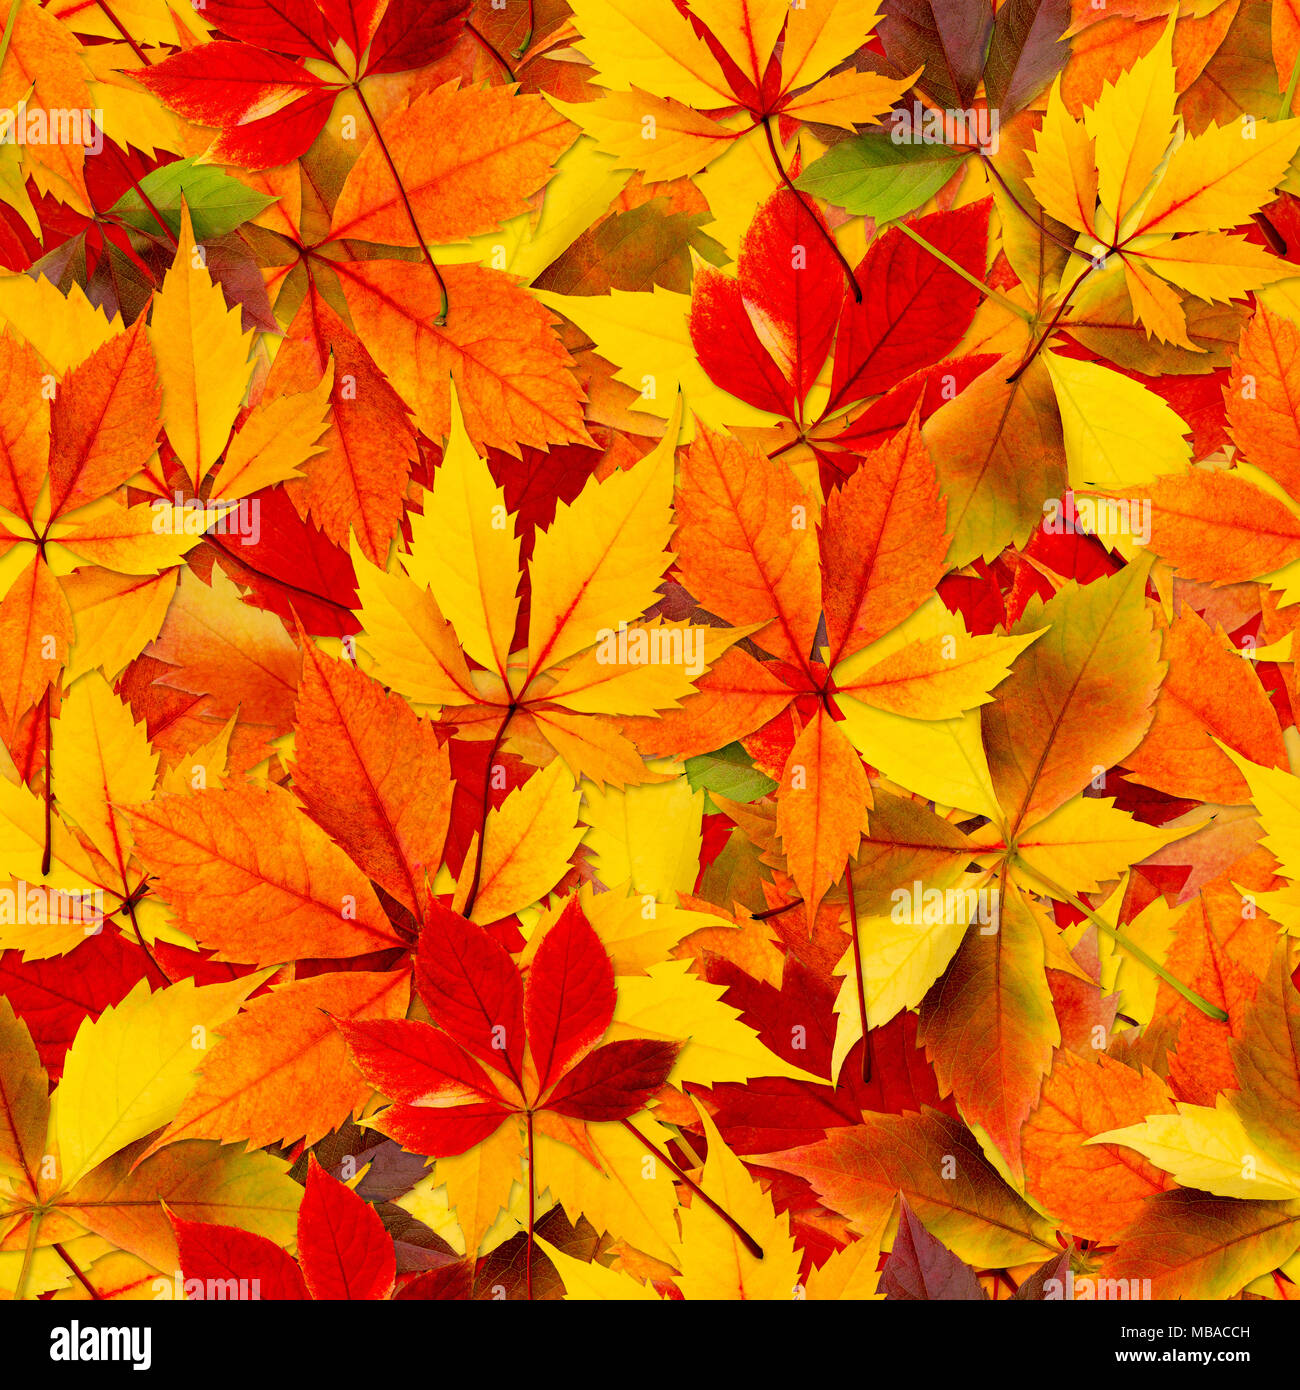 Fall Leaves Seamless Background High Resolution Stock Photography ...